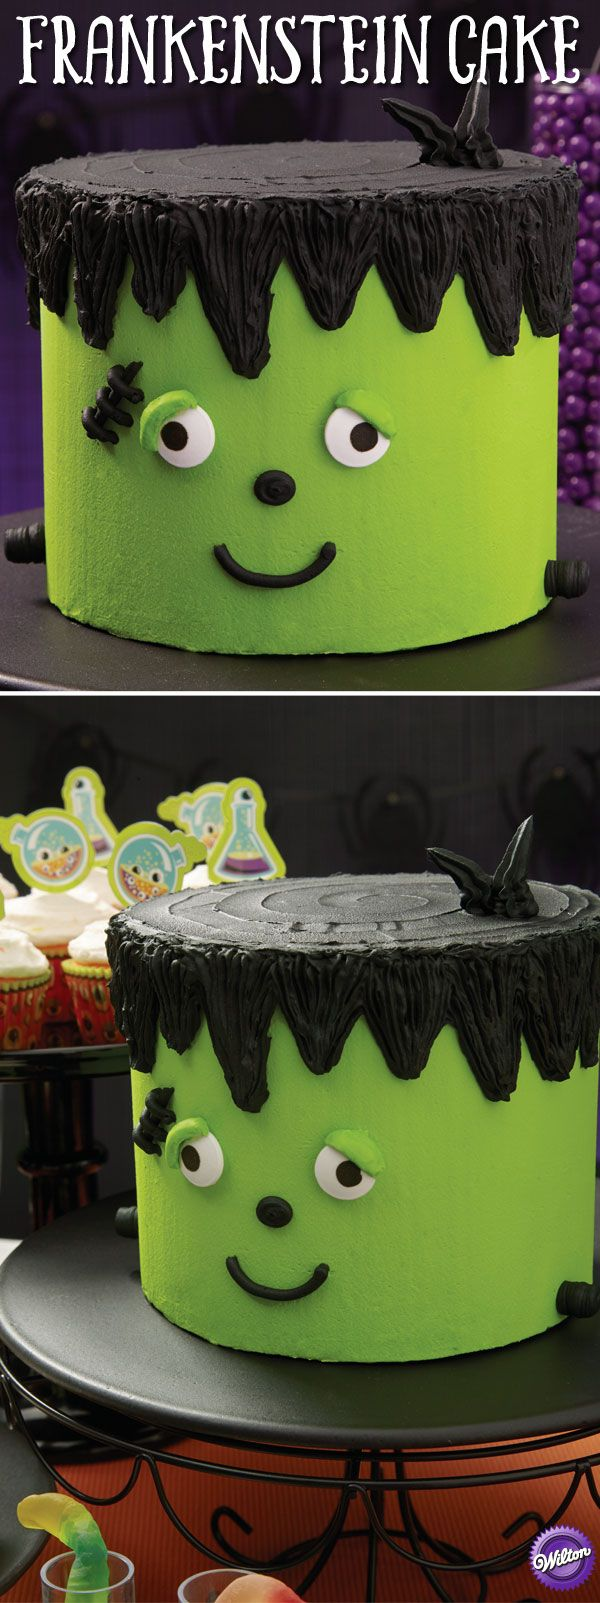 This easy buttercream cake makes a big statement, a fantastic centerpiece for your sweets table and will make others green with envy over your decorating skills. The Color Right Performance Color System makes it easy to mix the precise shade of Frankenstein green.